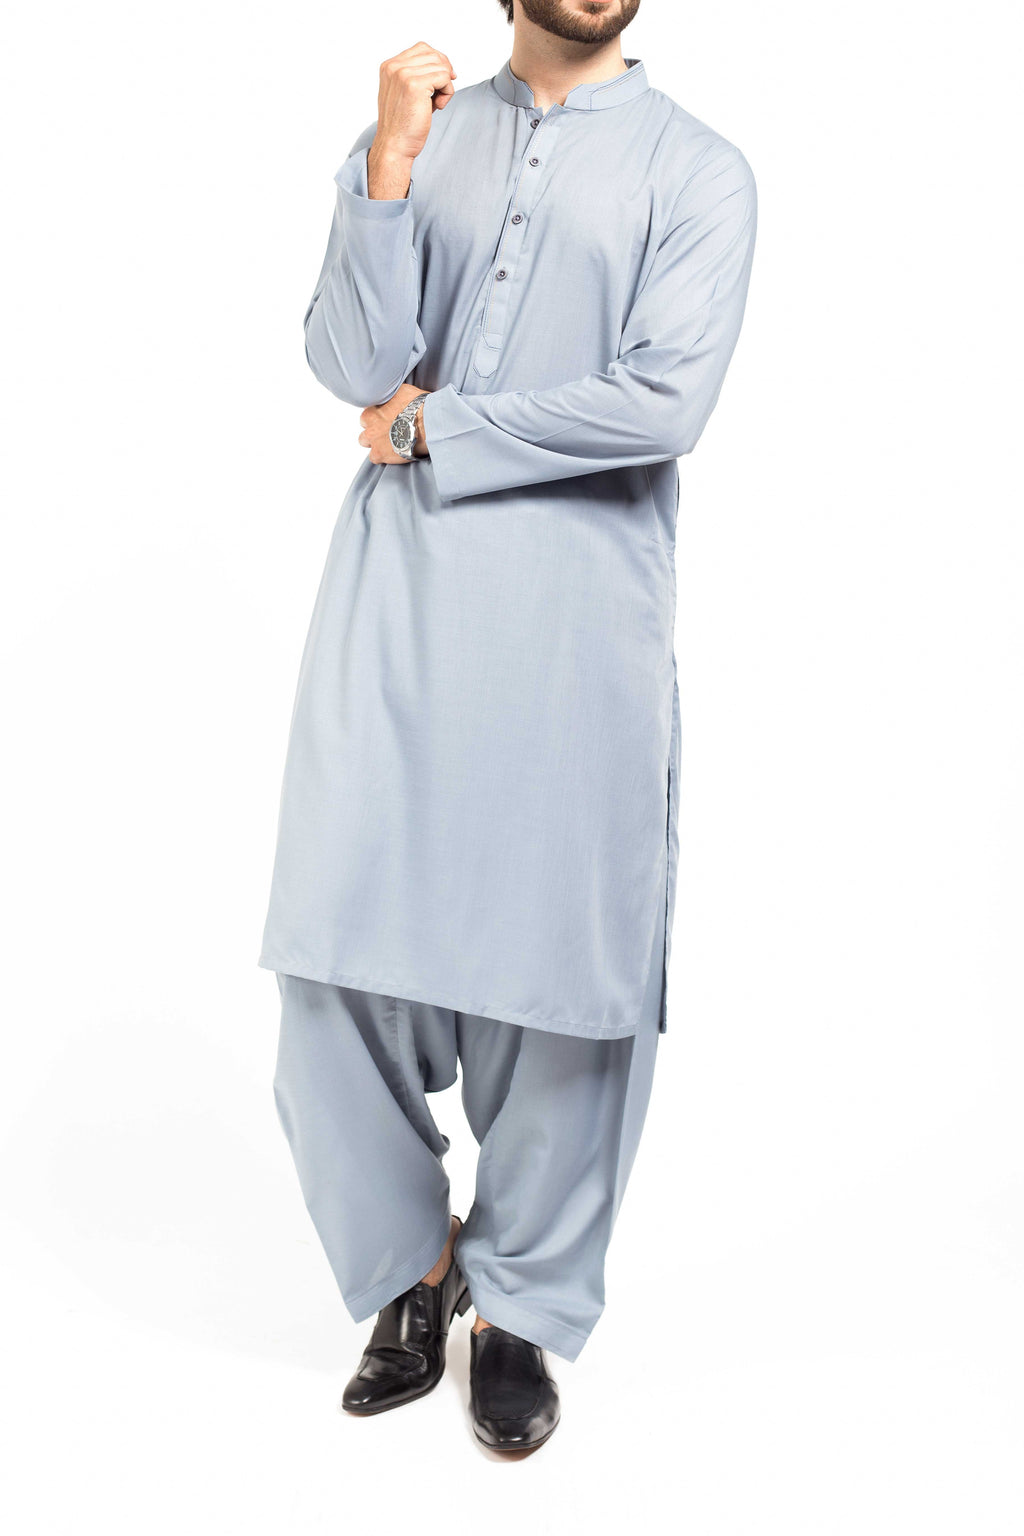 Image of   in Greyish Blue SKU: RQ-17305-Medium-Greyish Blue